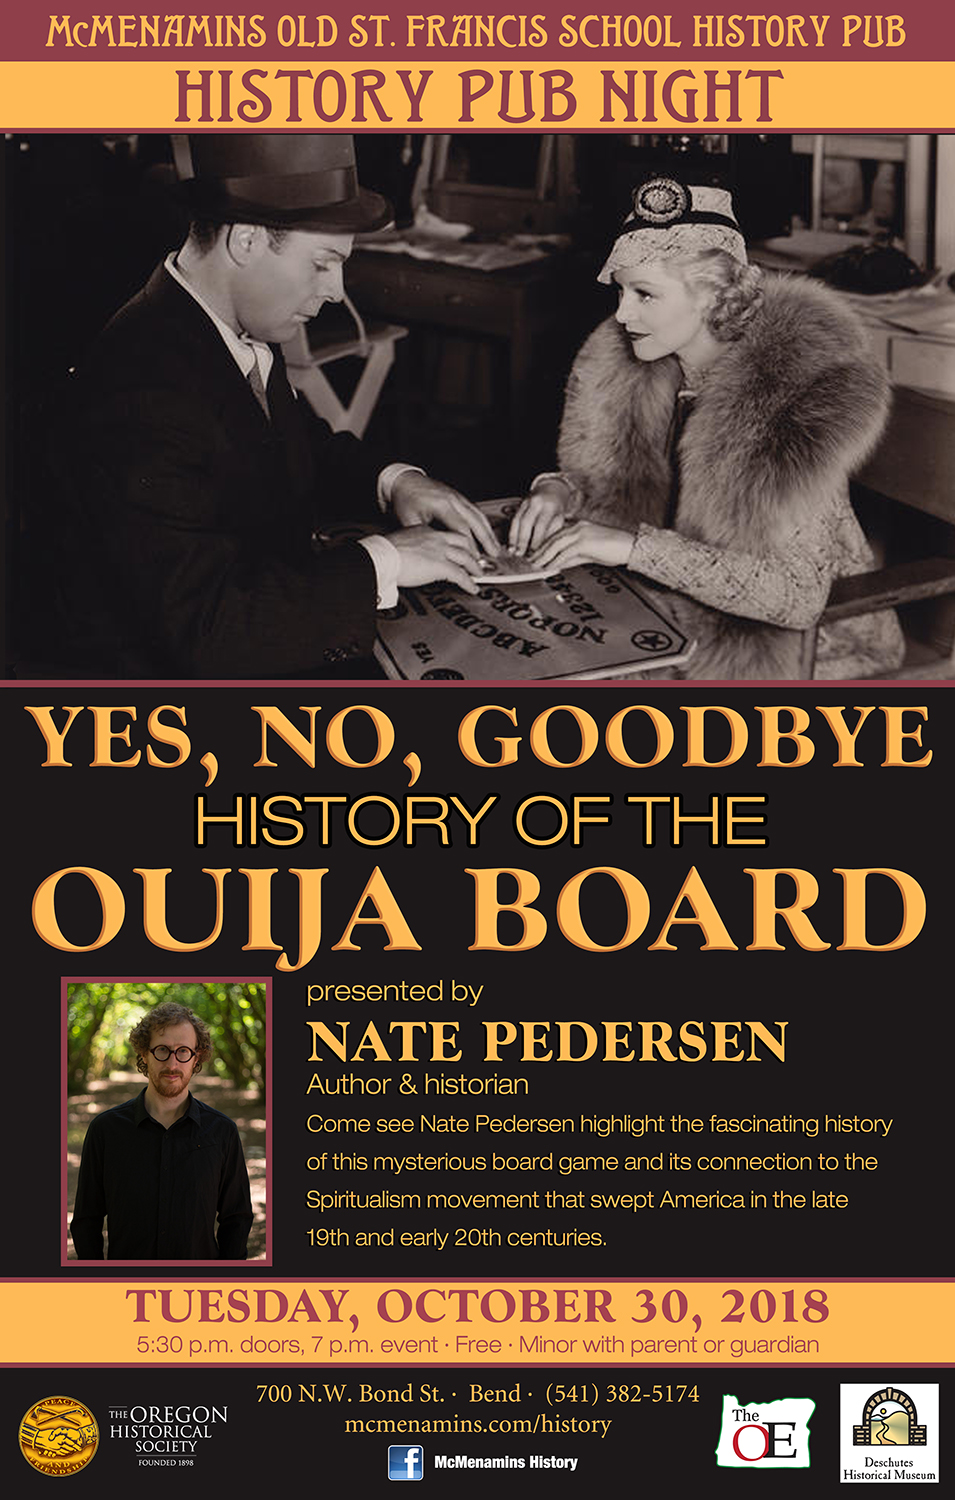 History Pub: Yes, No, Goodbye: A History of the Ouija Board